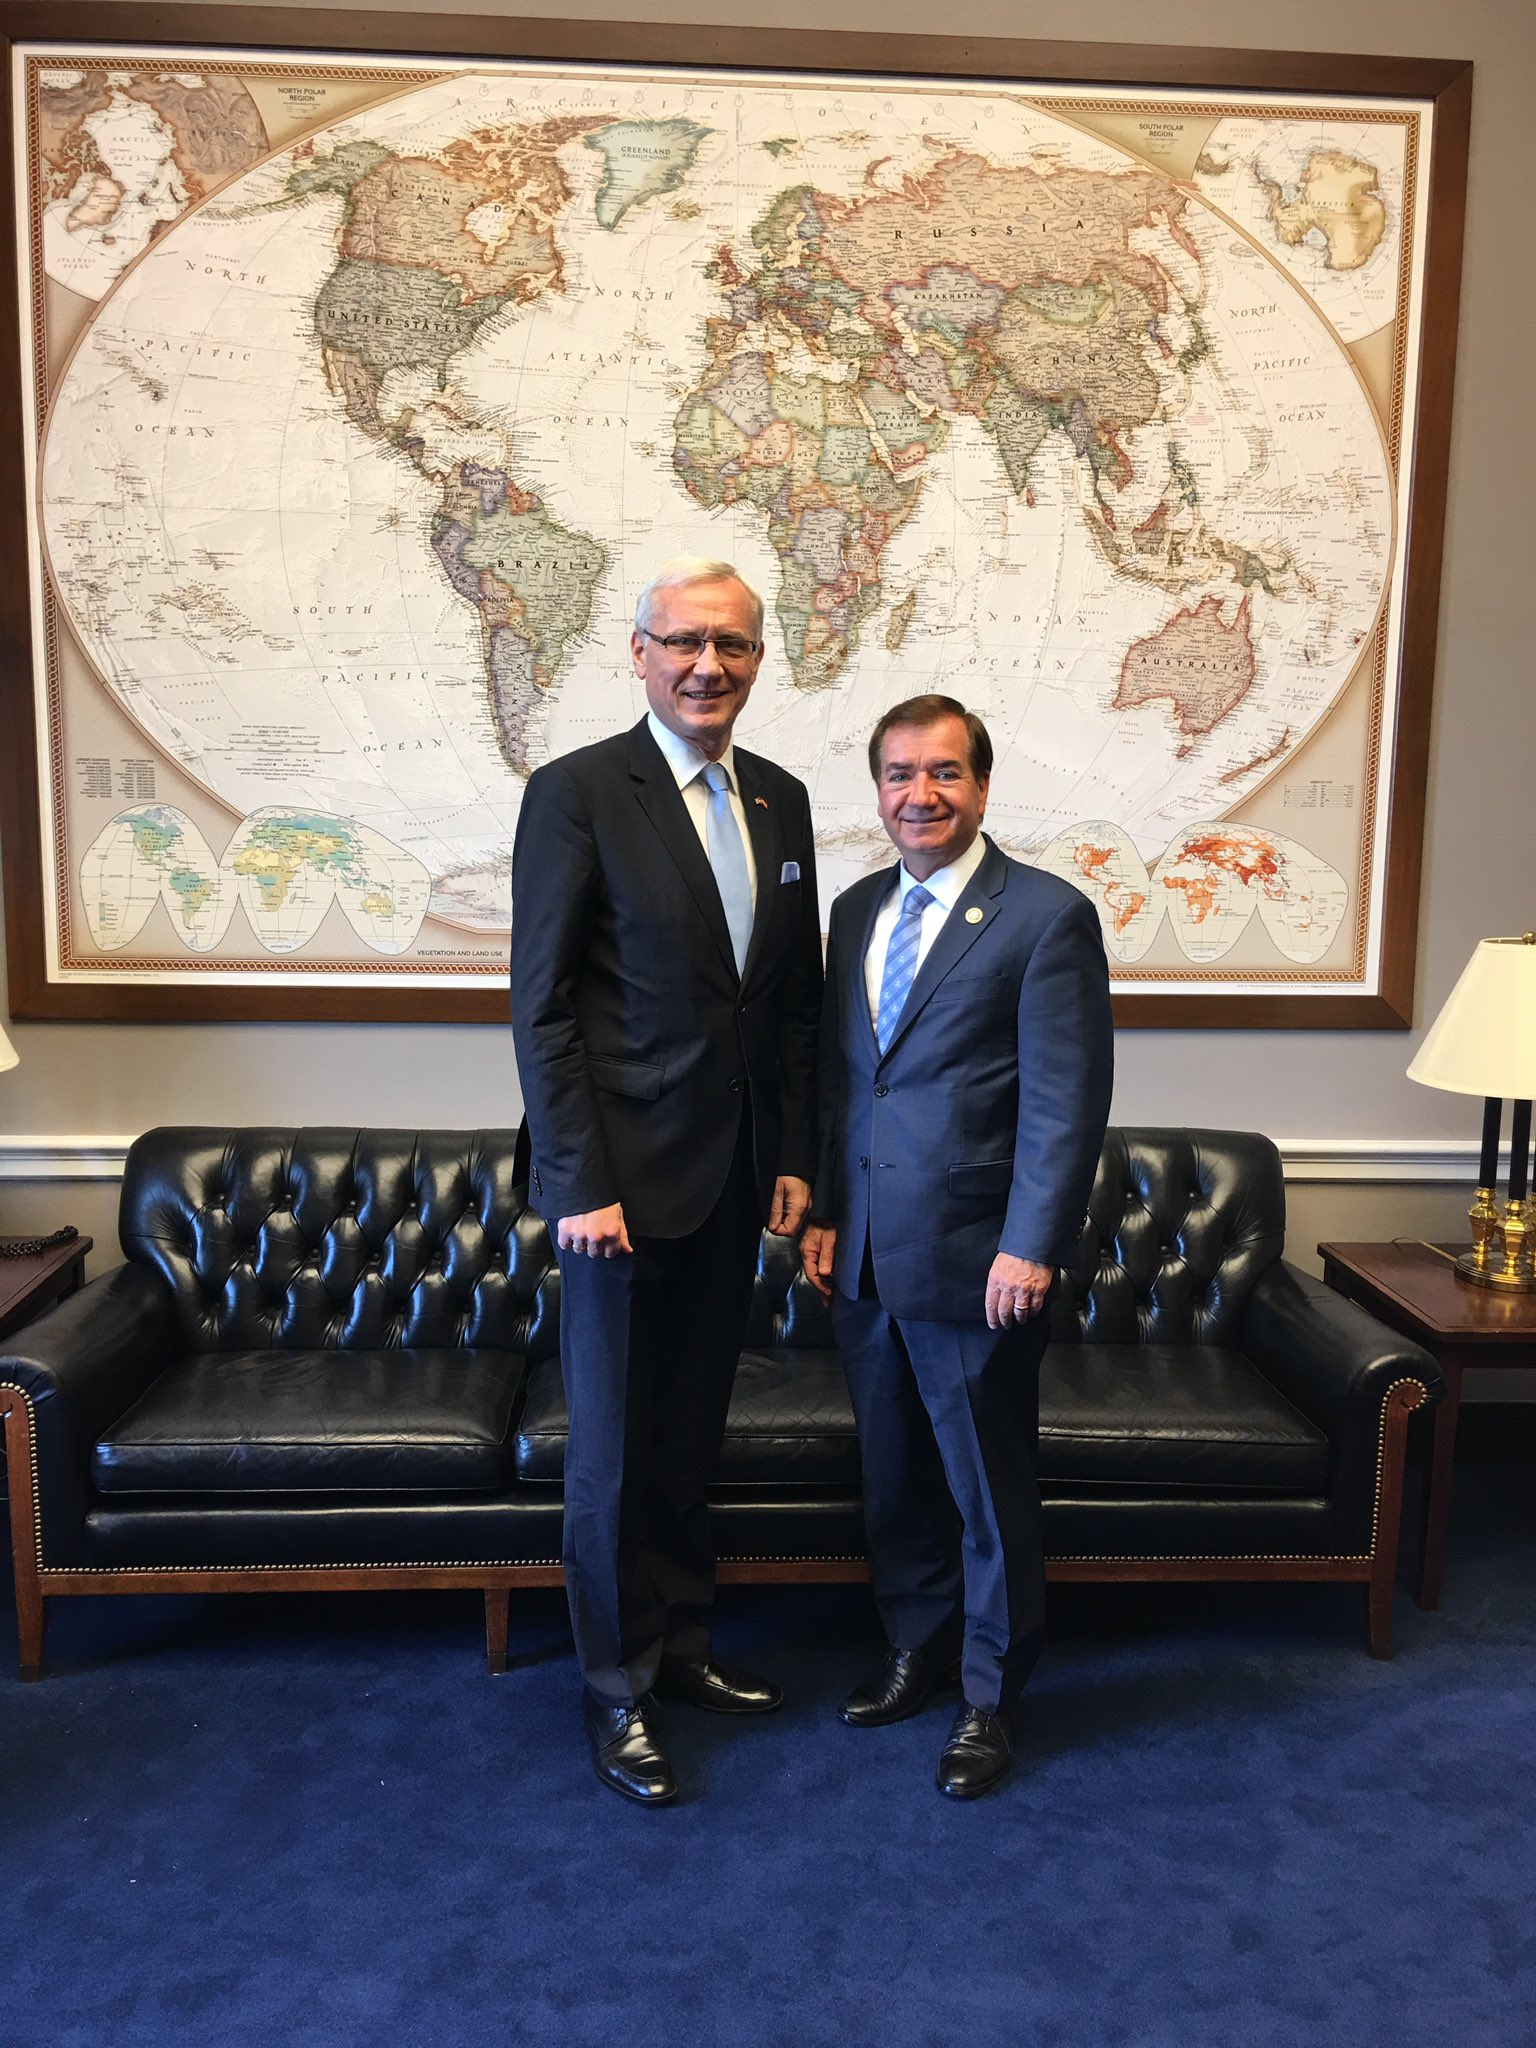 Ambassador Teikmanis and Representative Ed Royce